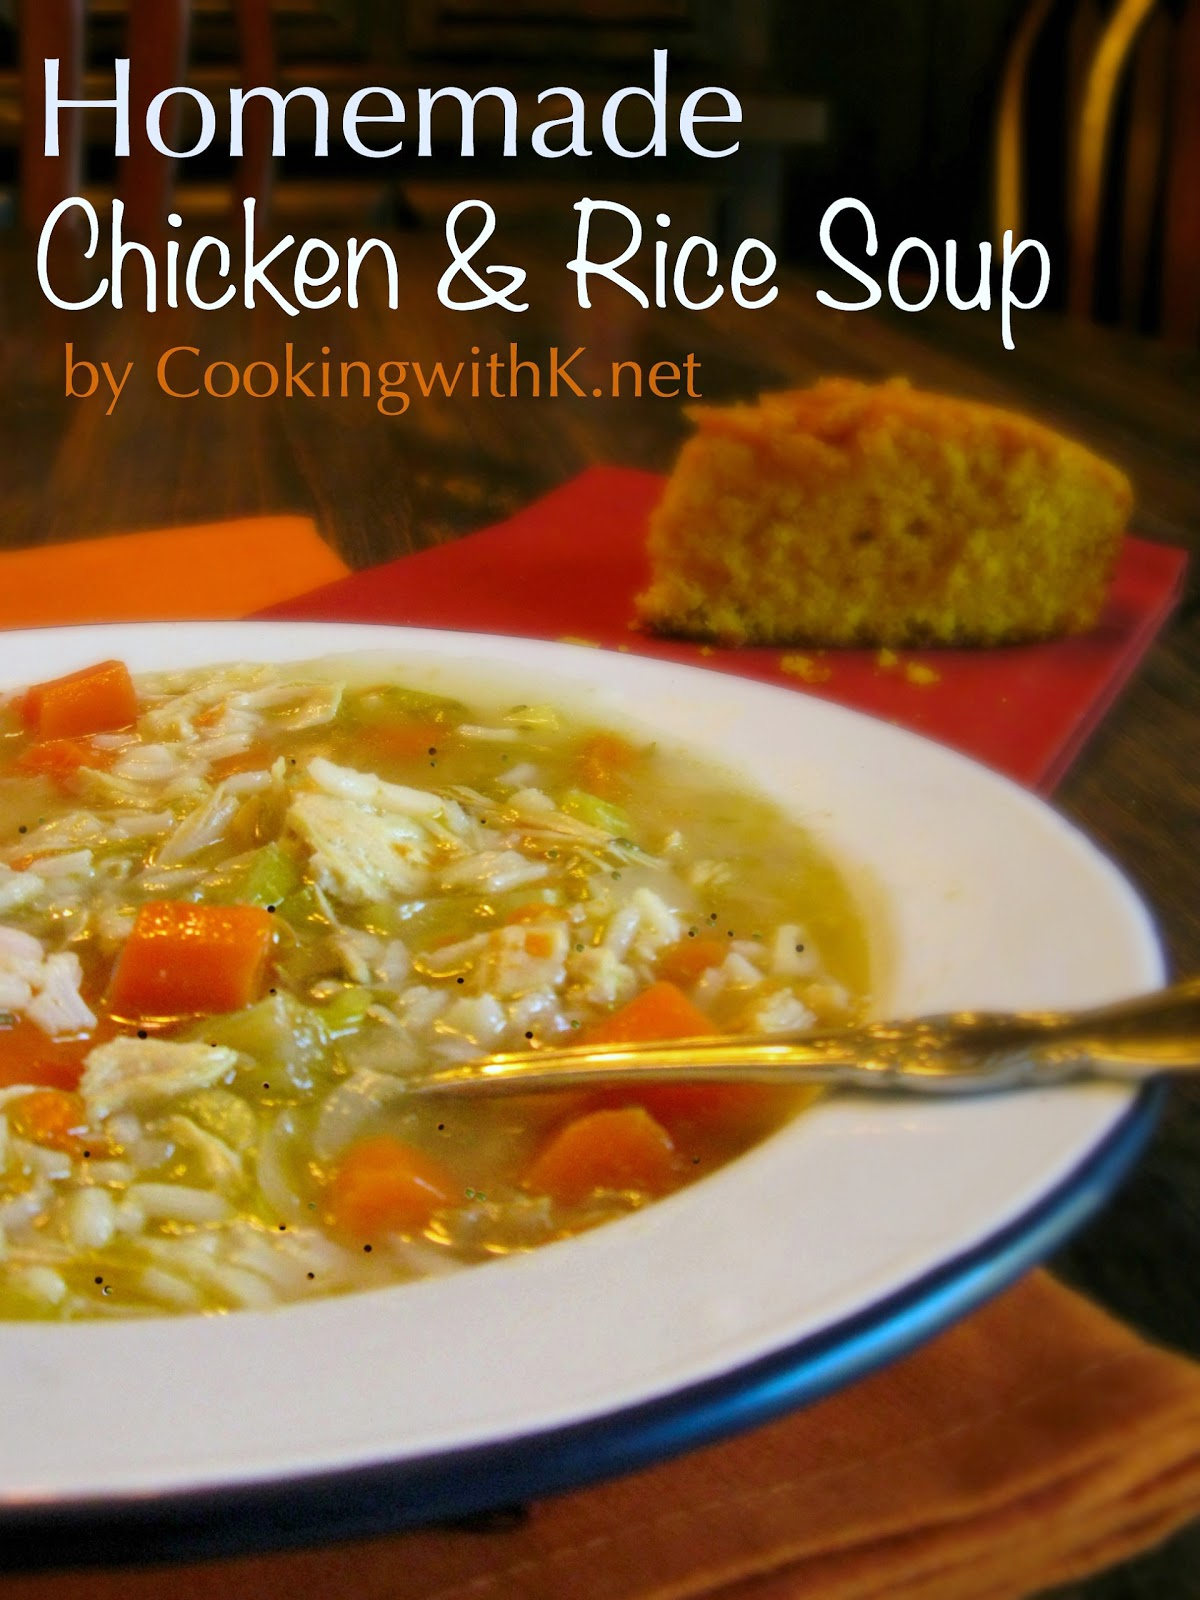 ... with K - Southern Kitchen Happenings: Homemade Chicken & Rice Soup